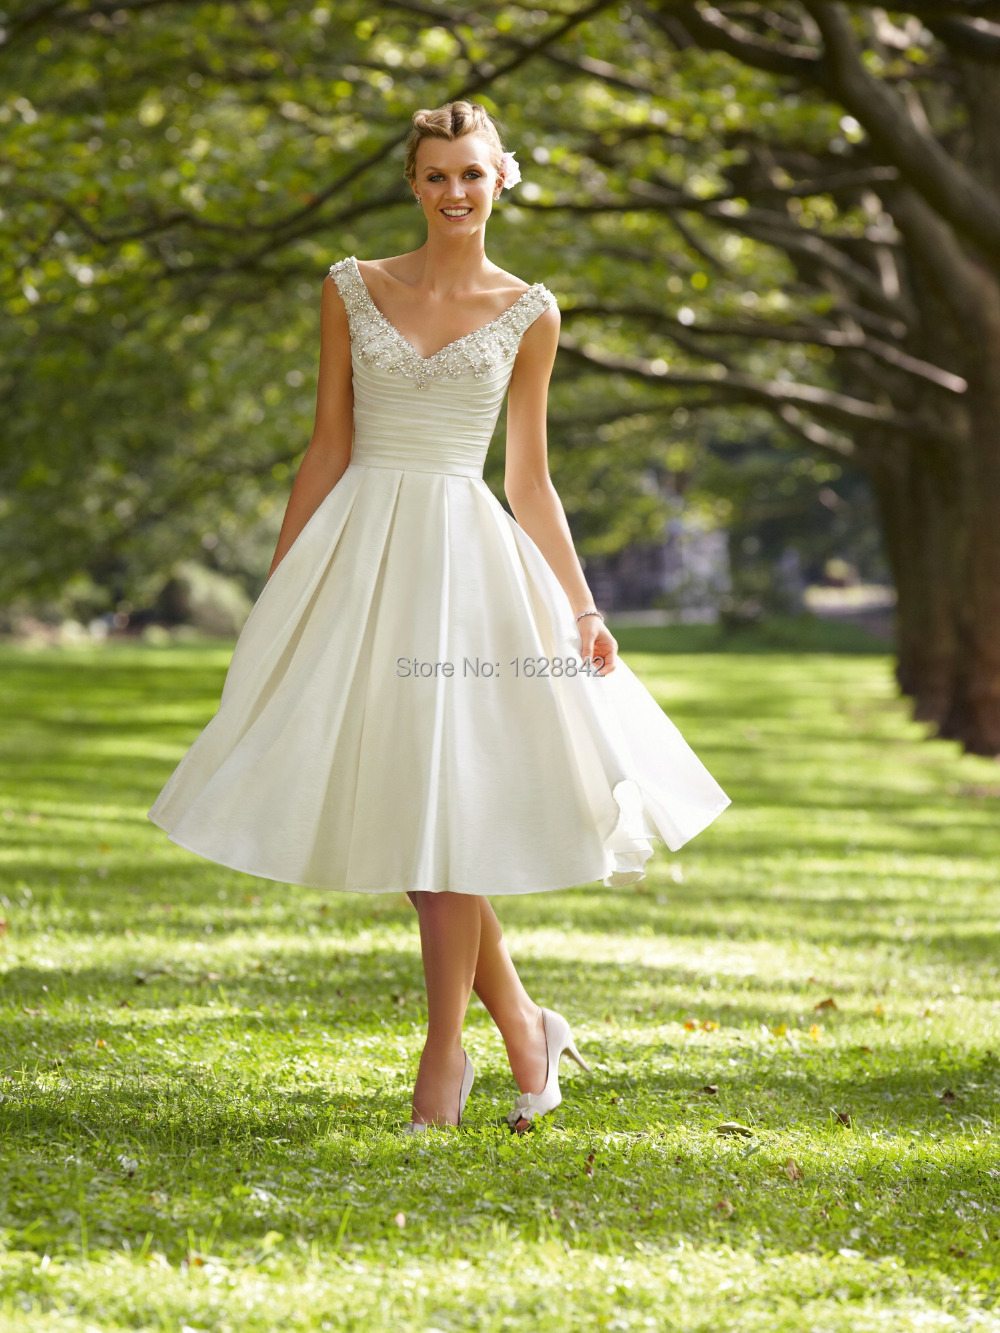 Sparkle & shine, vintage inspired, beach/destination dresses, luxury style, garden Wedding Dress - From $ - 10,+ Styles [more].